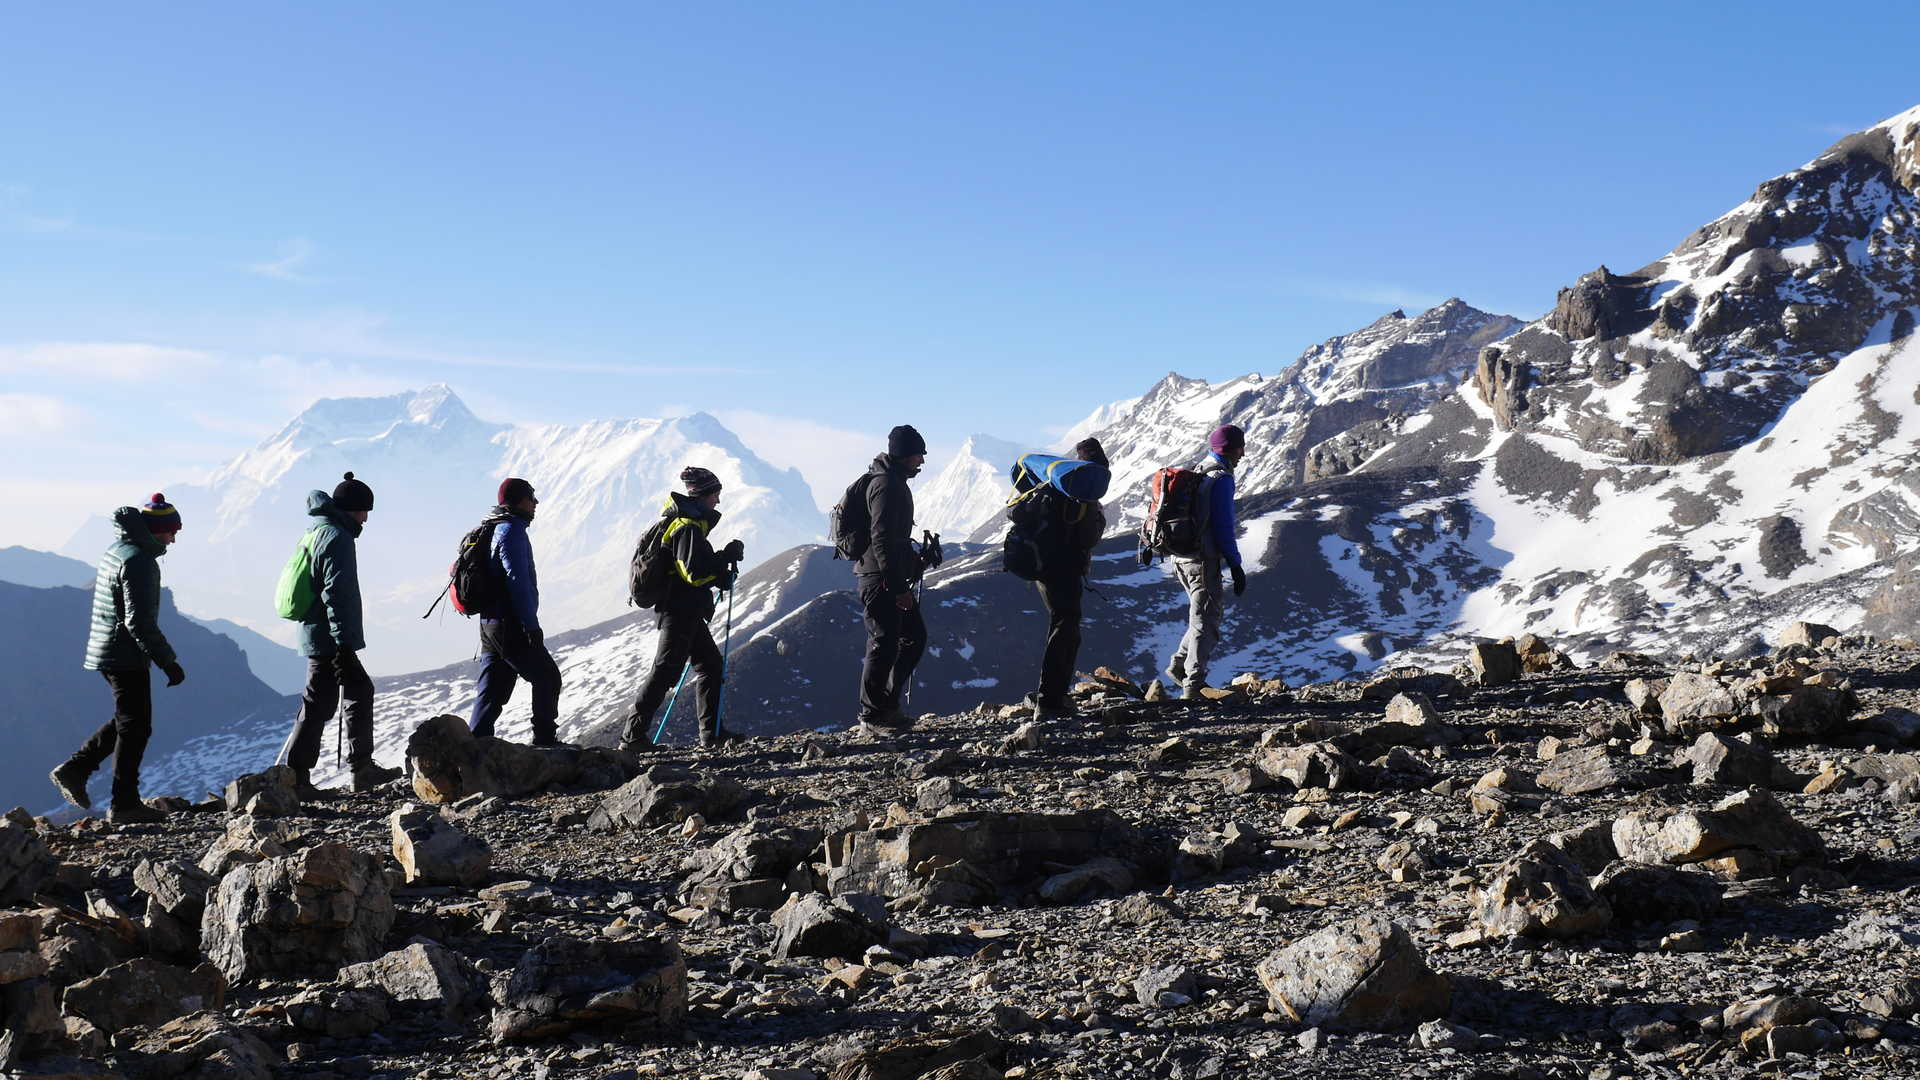 Trekkers on the Annapurnas Circuit